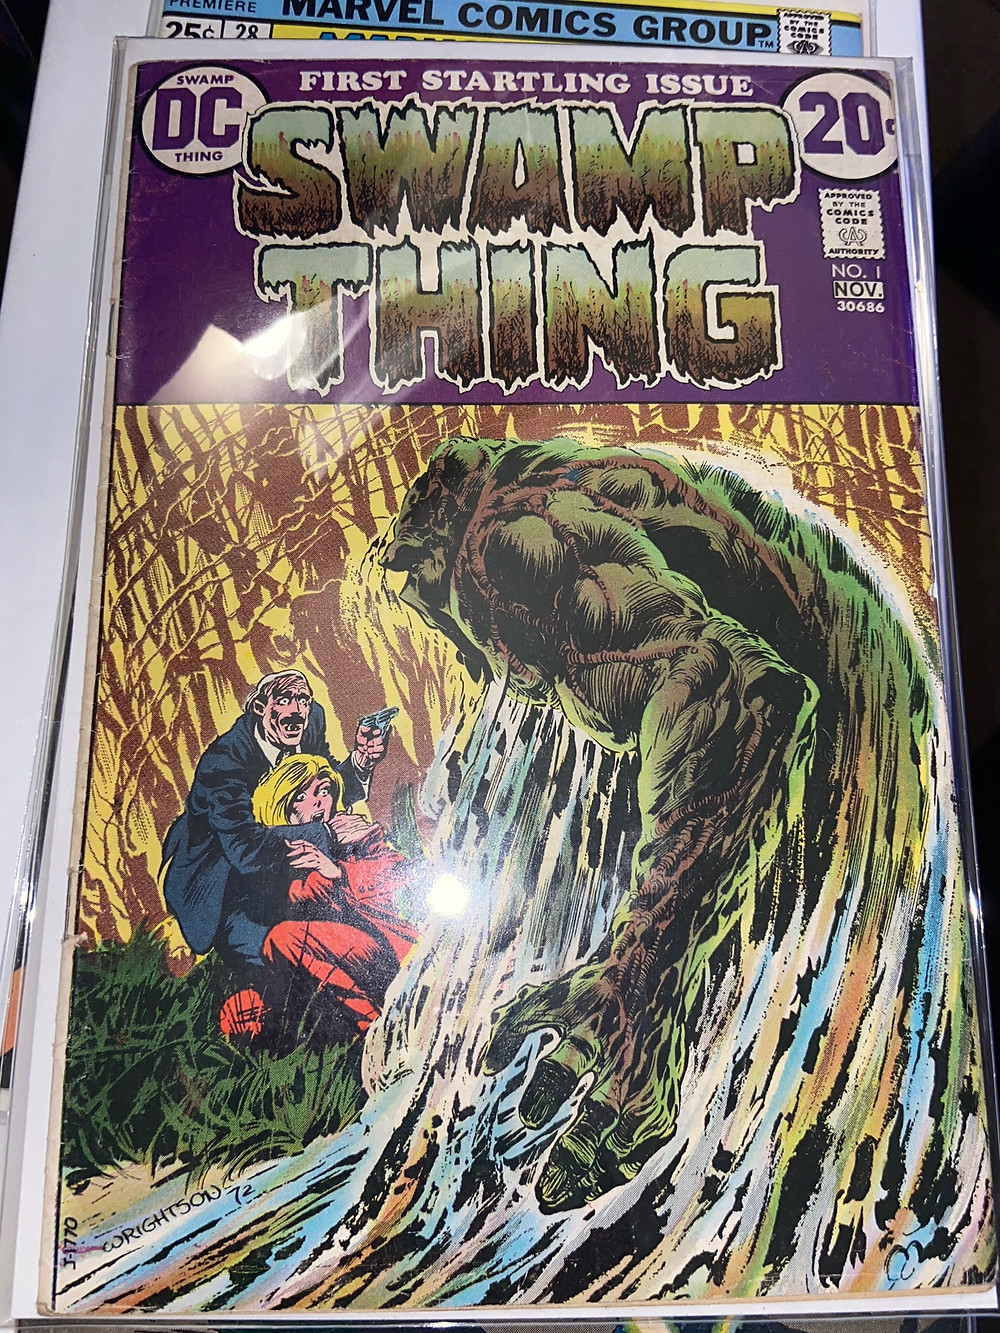 Swamp Thing 1 from DC (1972) by Bernie Wrightson and Len Wein